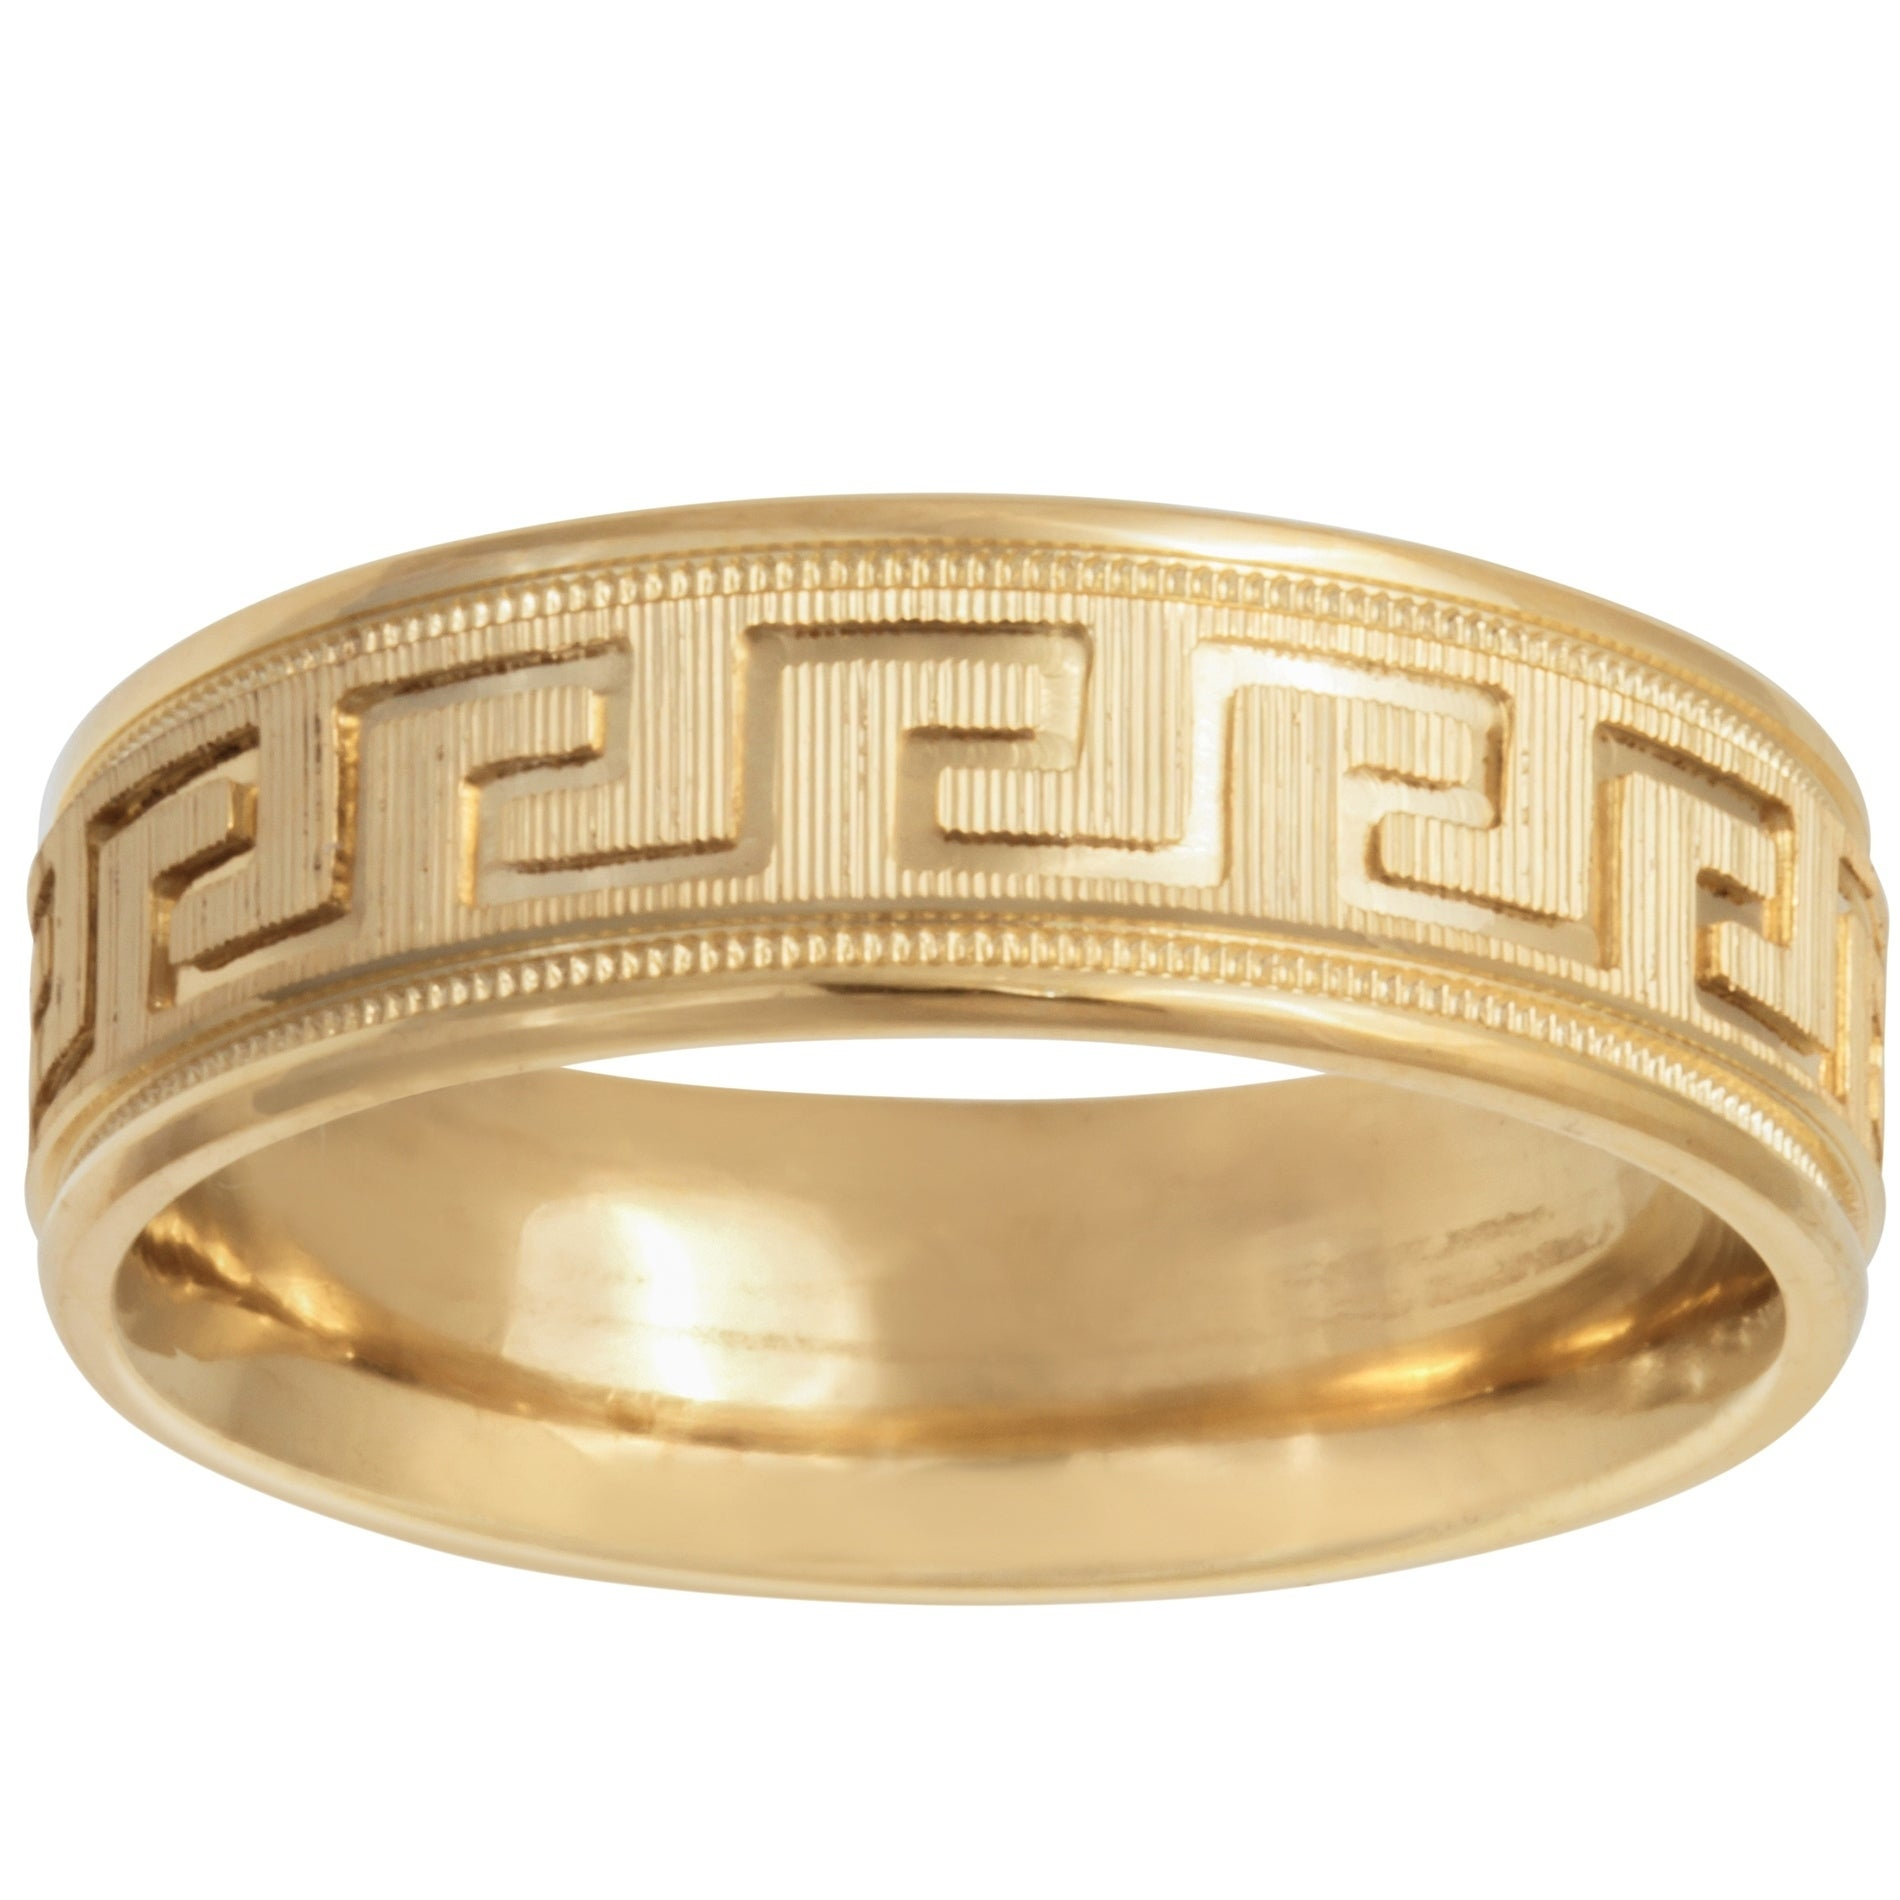 14k Gold Greek Key Design Comfort Fit Wedding Band On Free Shipping Today 13003837